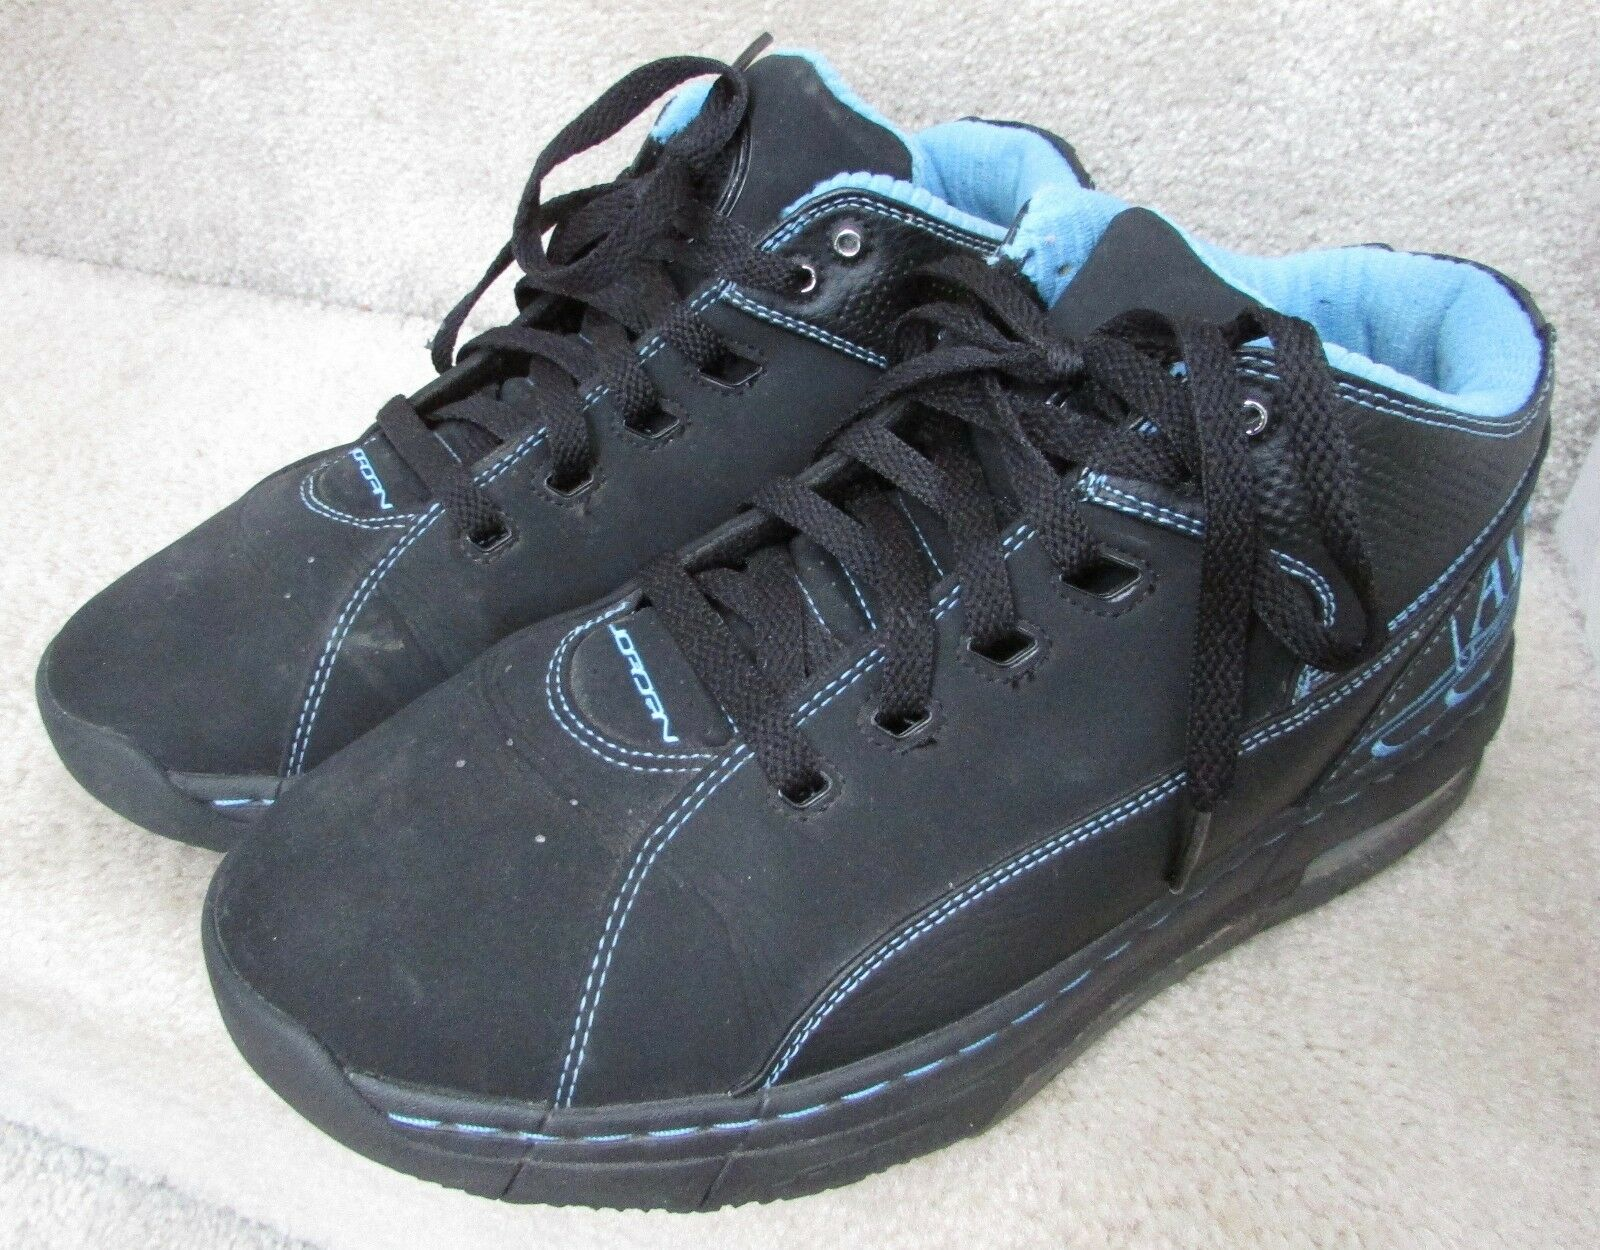 Jordan Ol'School Low Mens 317765 Black bluee Basketball shoes Size 9.5